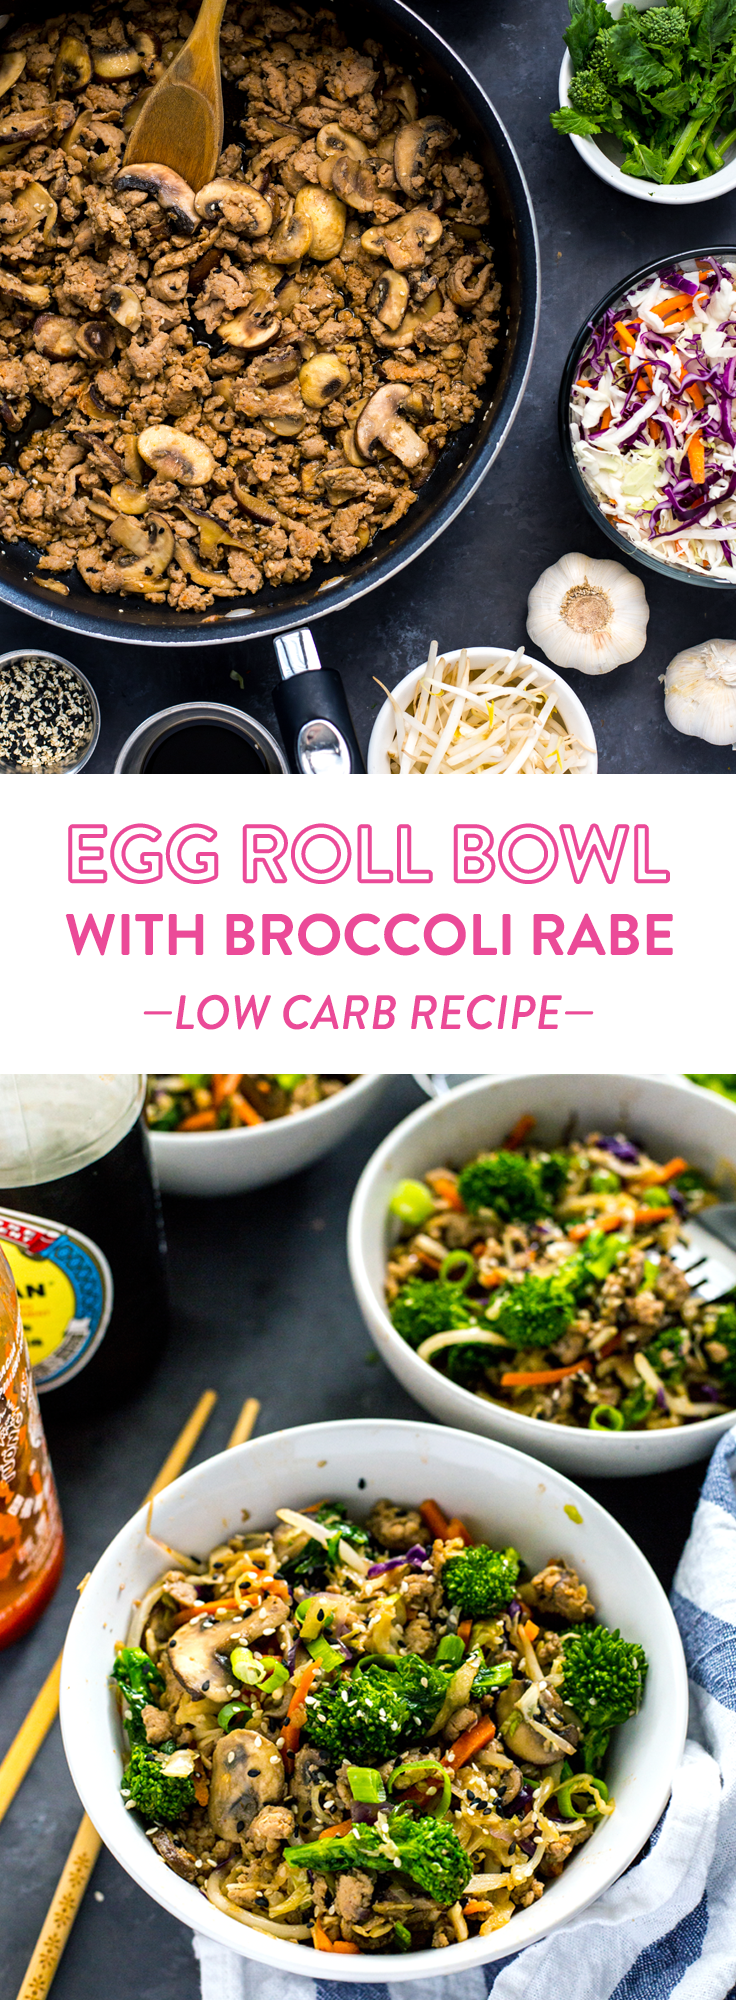 Egg Roll Broccoli Rabe Bowl Pinterest